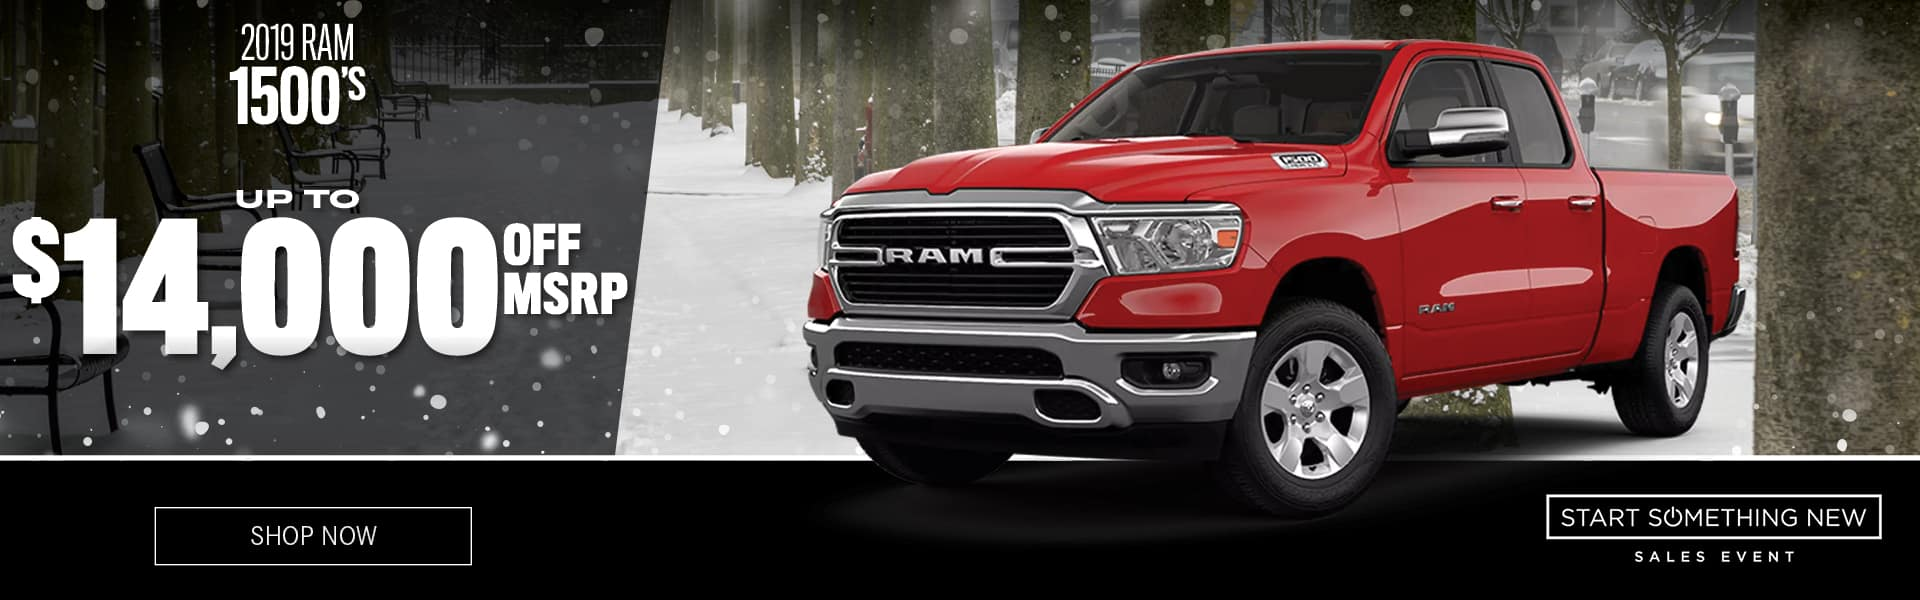 RAM 1500 Truck Special in Roswell, GA